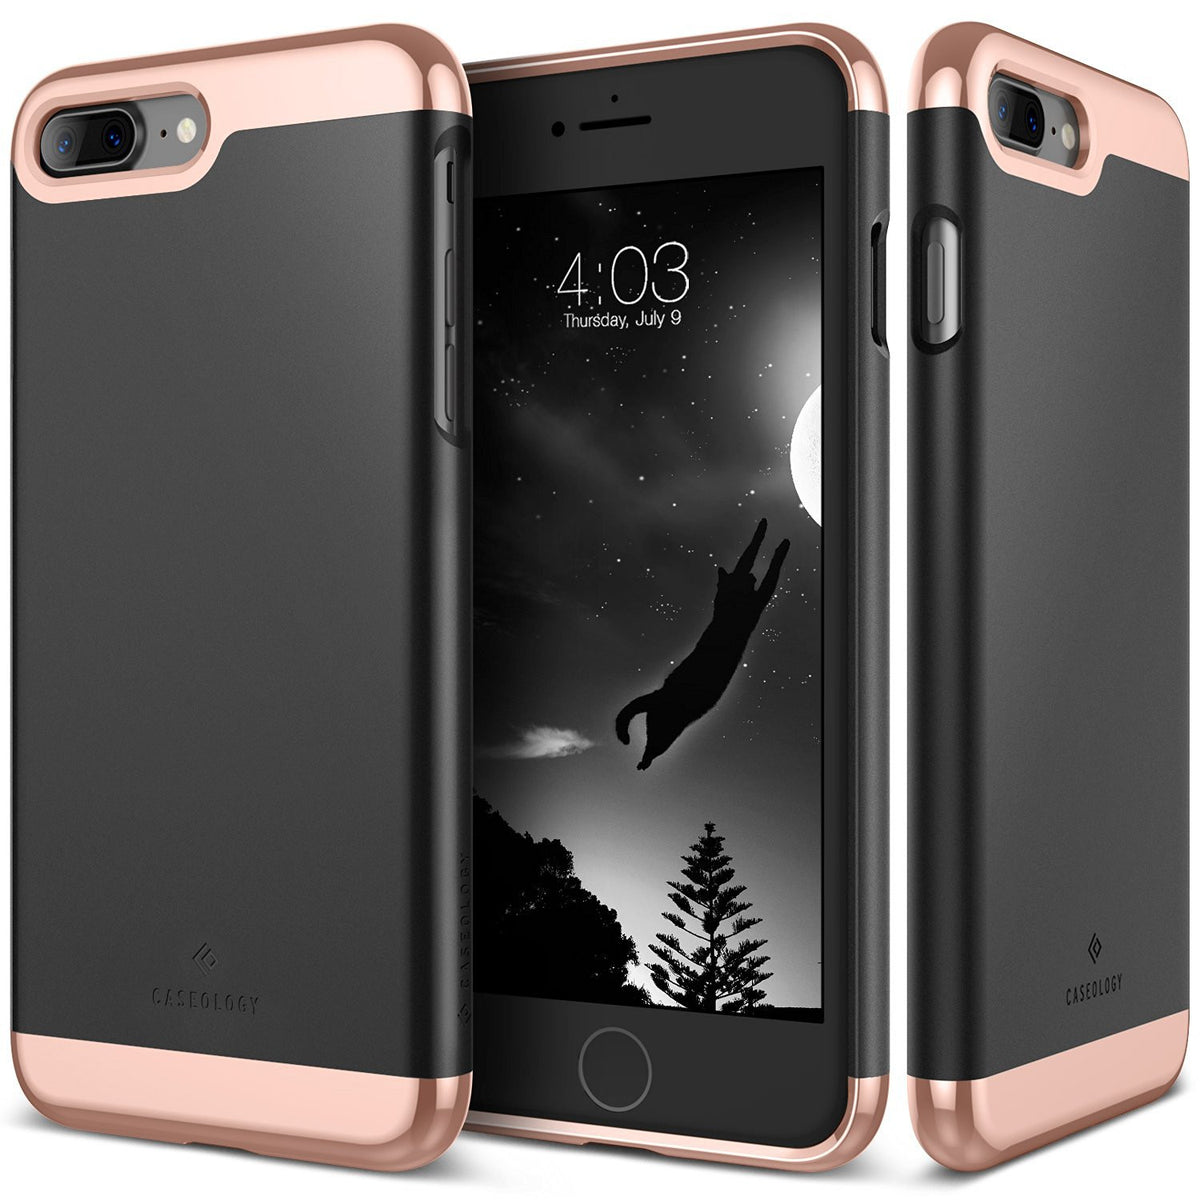 sports shoes cce03 328f2 The Matte Black and Gold Dual Layer Slider / Soft Interior Cover iPhone 7  Plus Case